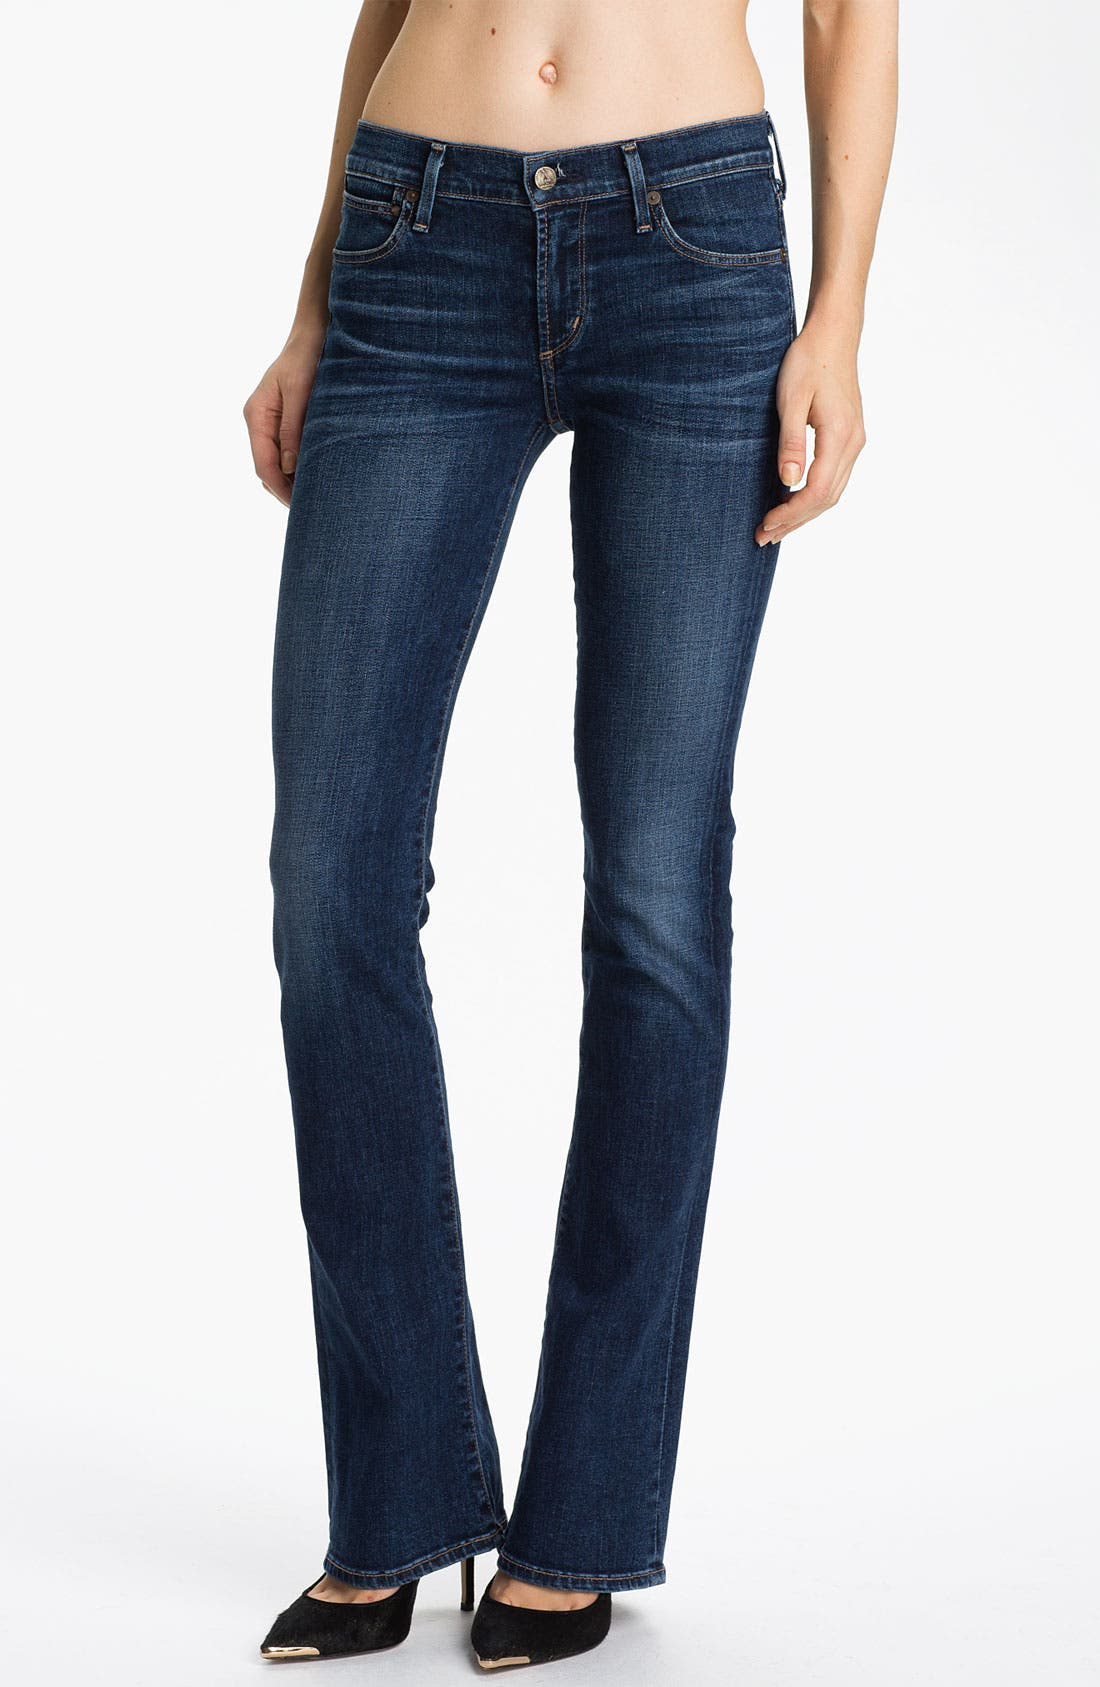 Main Image - Citizens of Humanity 'Emmanuelle' Slim Bootcut Jeans (Crispy)